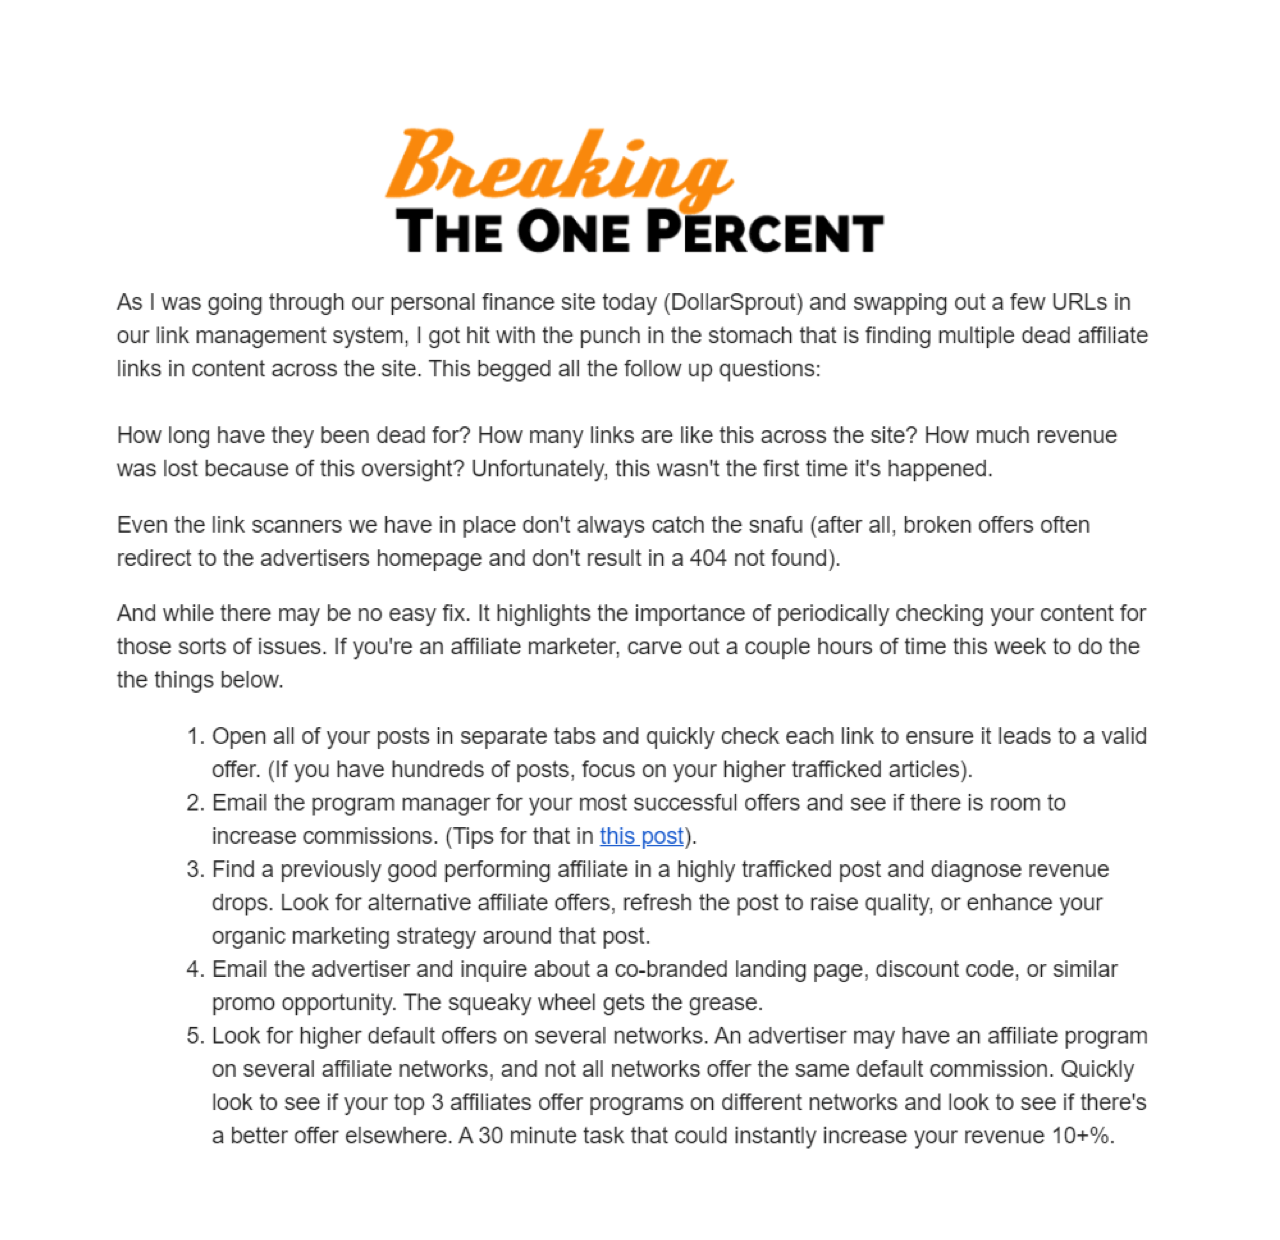 Breaking the One Percent shares helpful tips with their readers in a newsletter